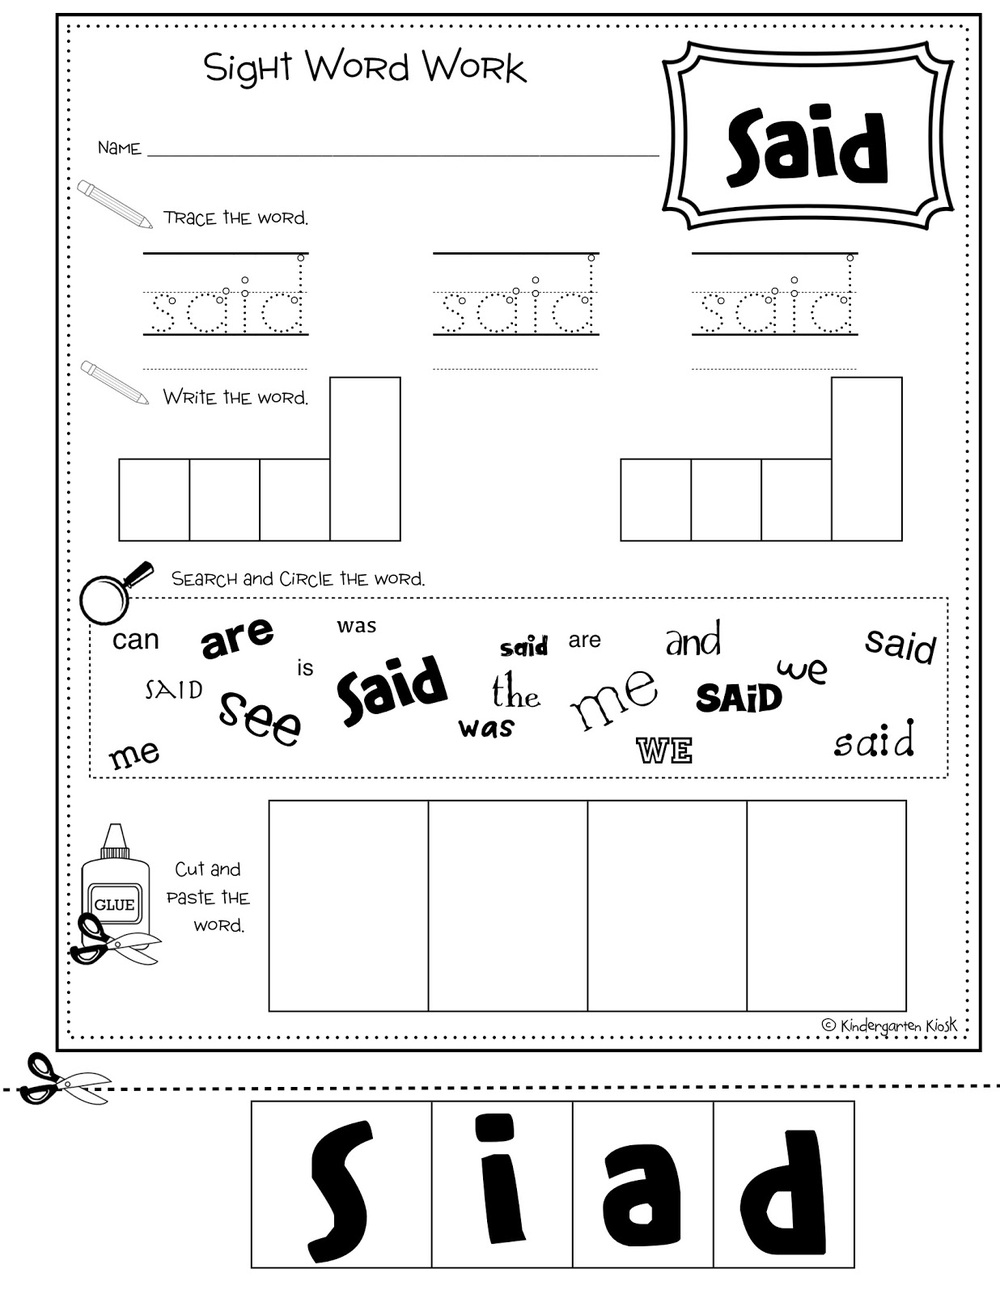 worksheet Sight Words Worksheets For Kindergarten sight word no prep multi task worksheets kindergarten kiosk this product includes 109 words these include the 100 most frequently used as well in